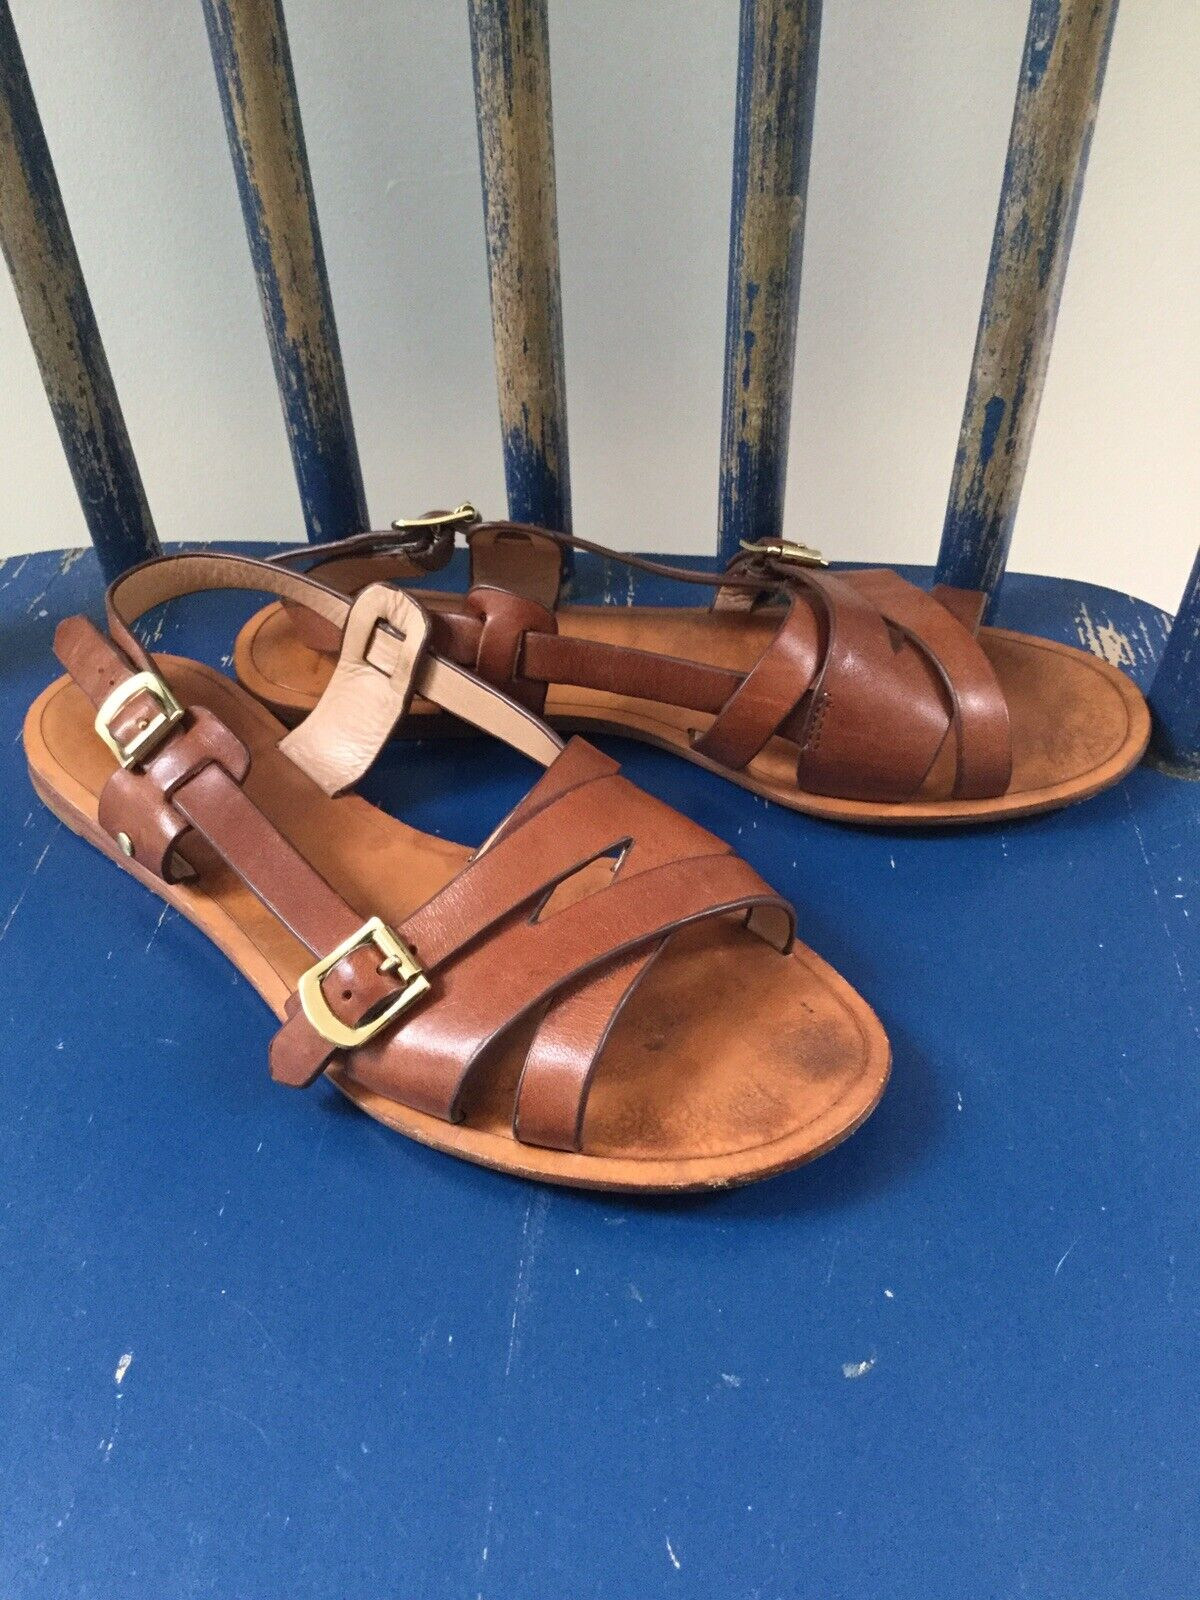 Vero Cuoio Women's Sz 6.5 (36.5) Strappy Leather Sandal gold Buckle Leather Sole